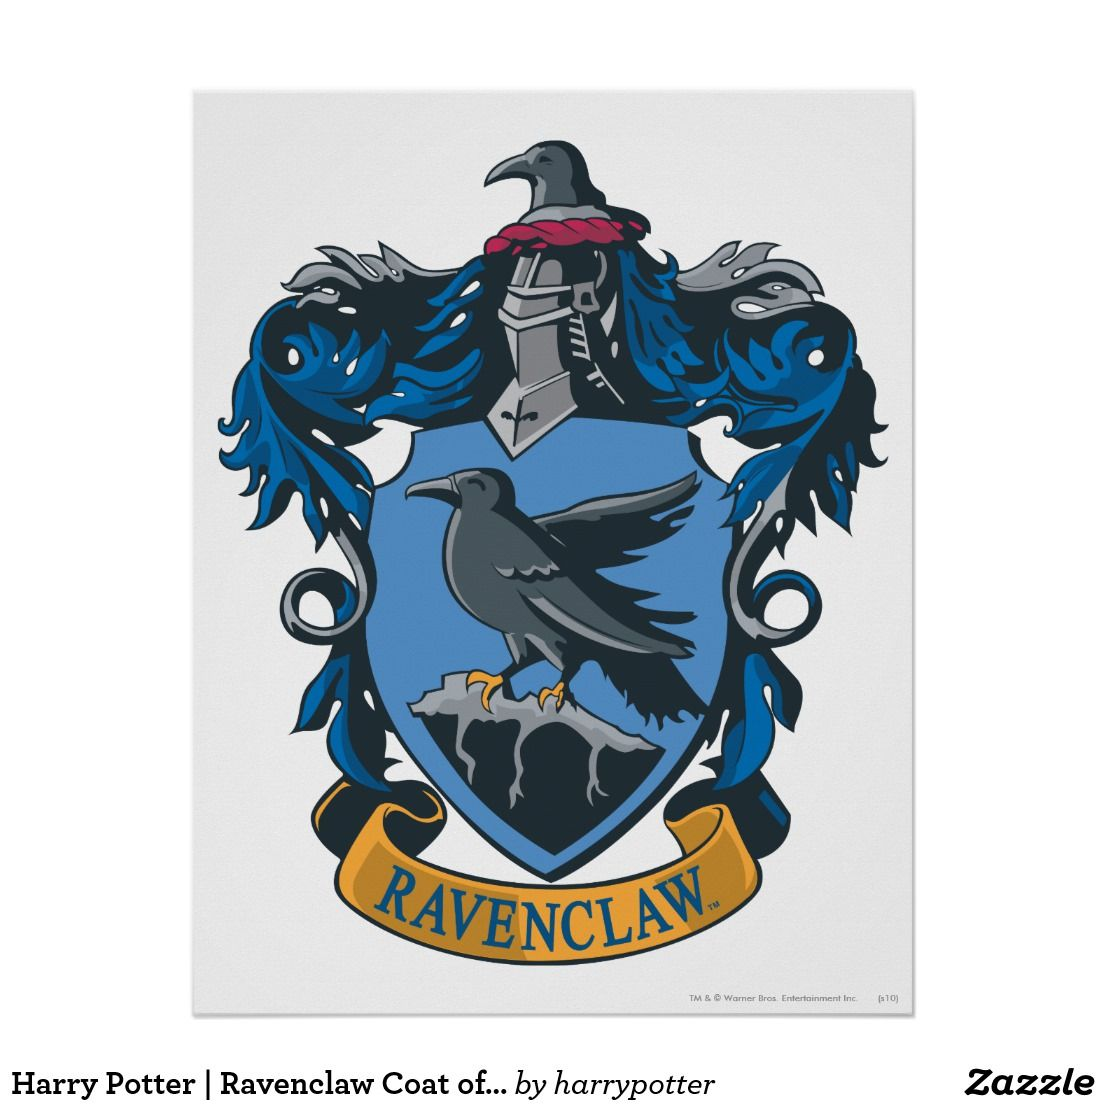 Harry Potter Ravenclaw Coat Of Arms Poster Zazzle Com Harry